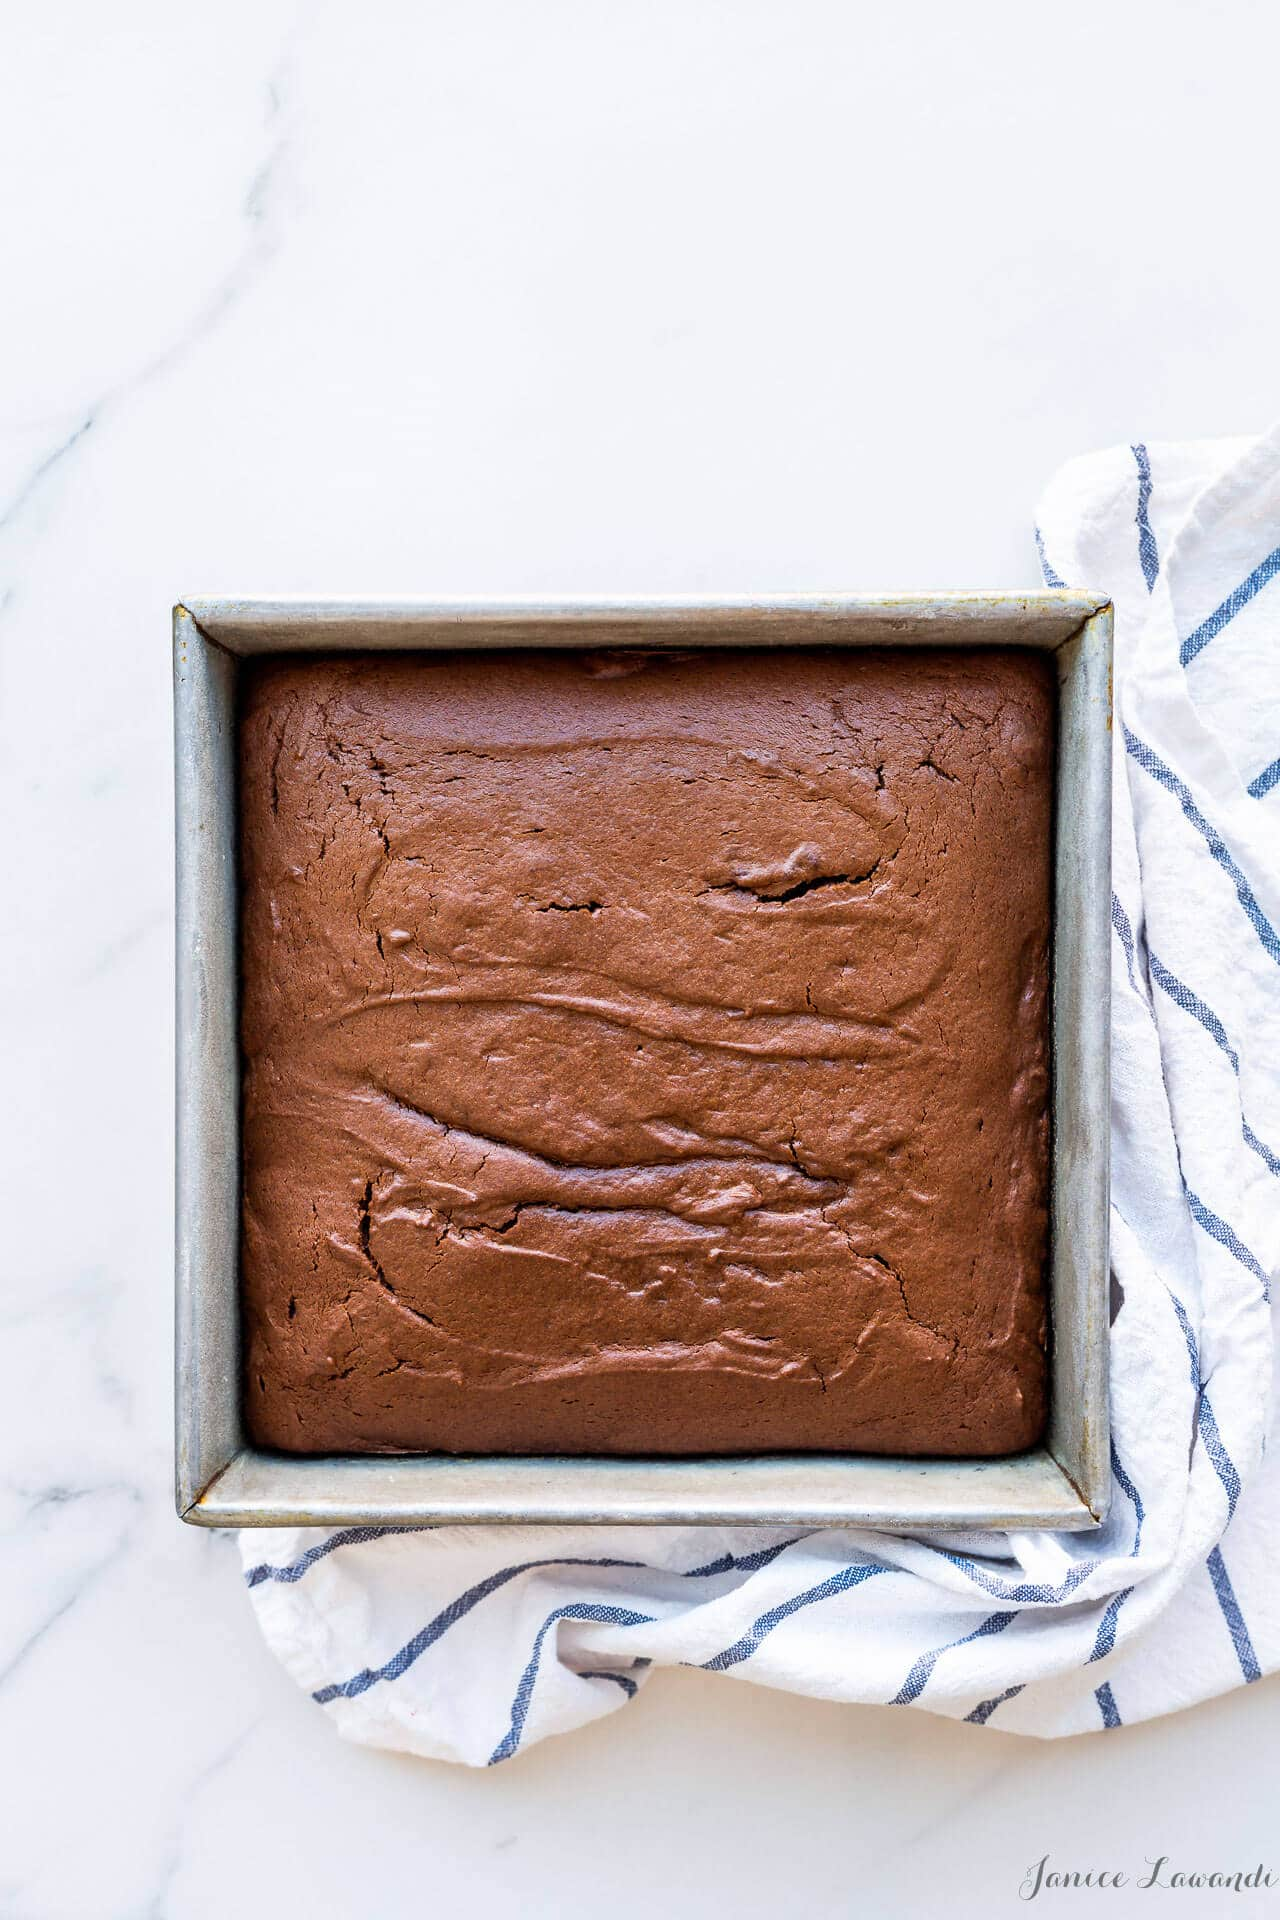 Easy chocolate cake baked in a square 9x9 cake pan, made with melted